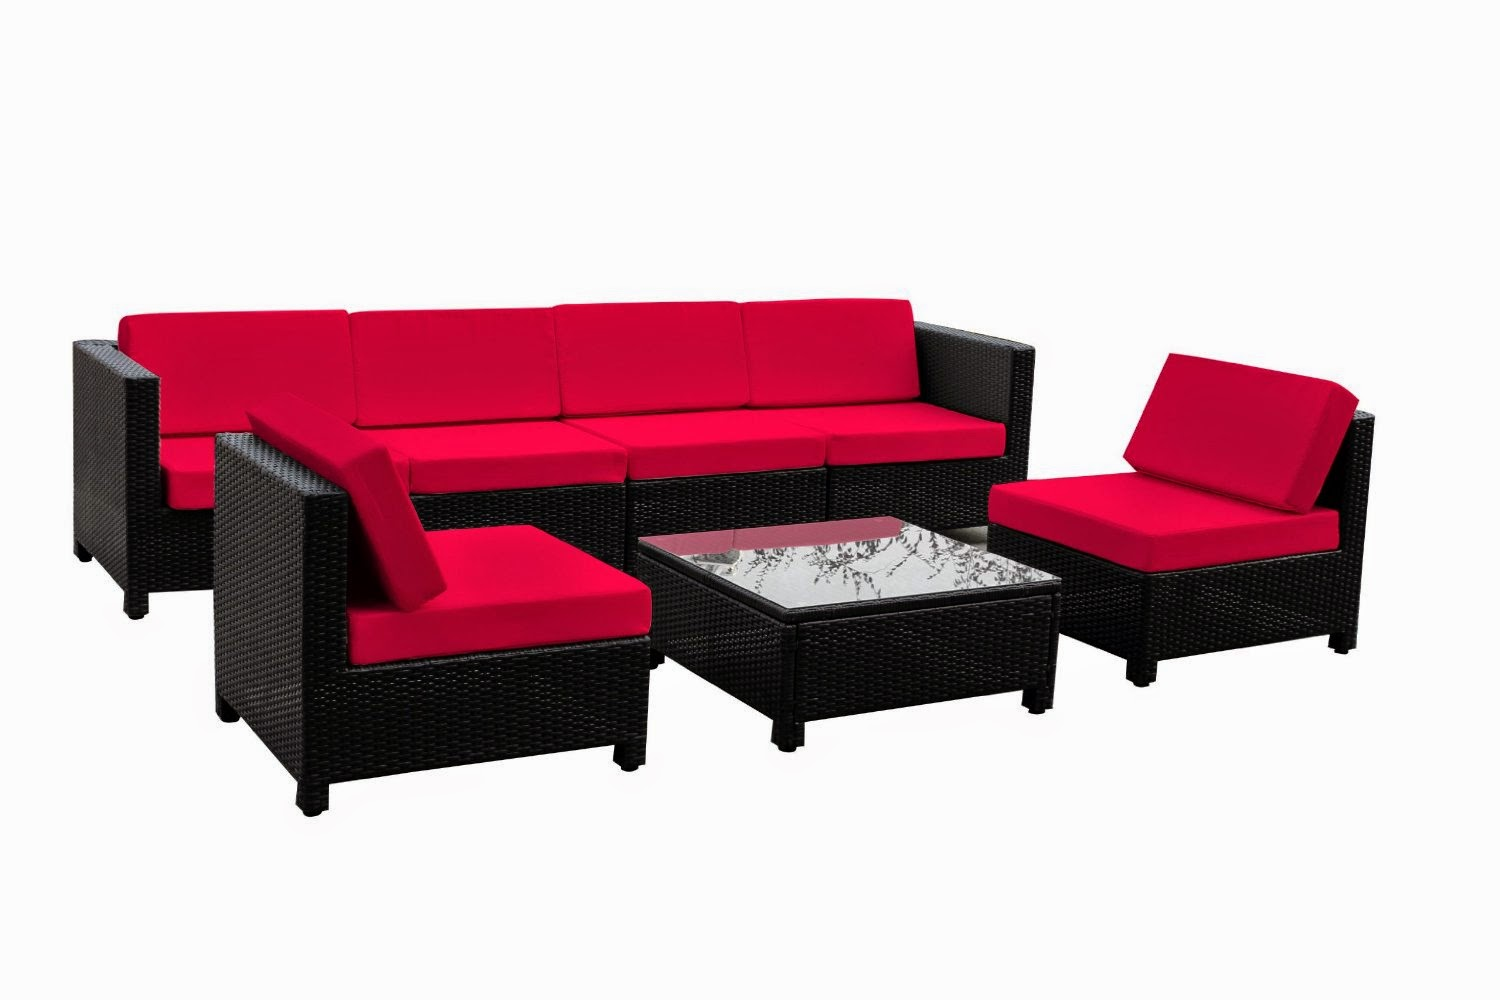 Luxury Wicker Patio Sectional Indoor Outdoor Sofa Furniture set